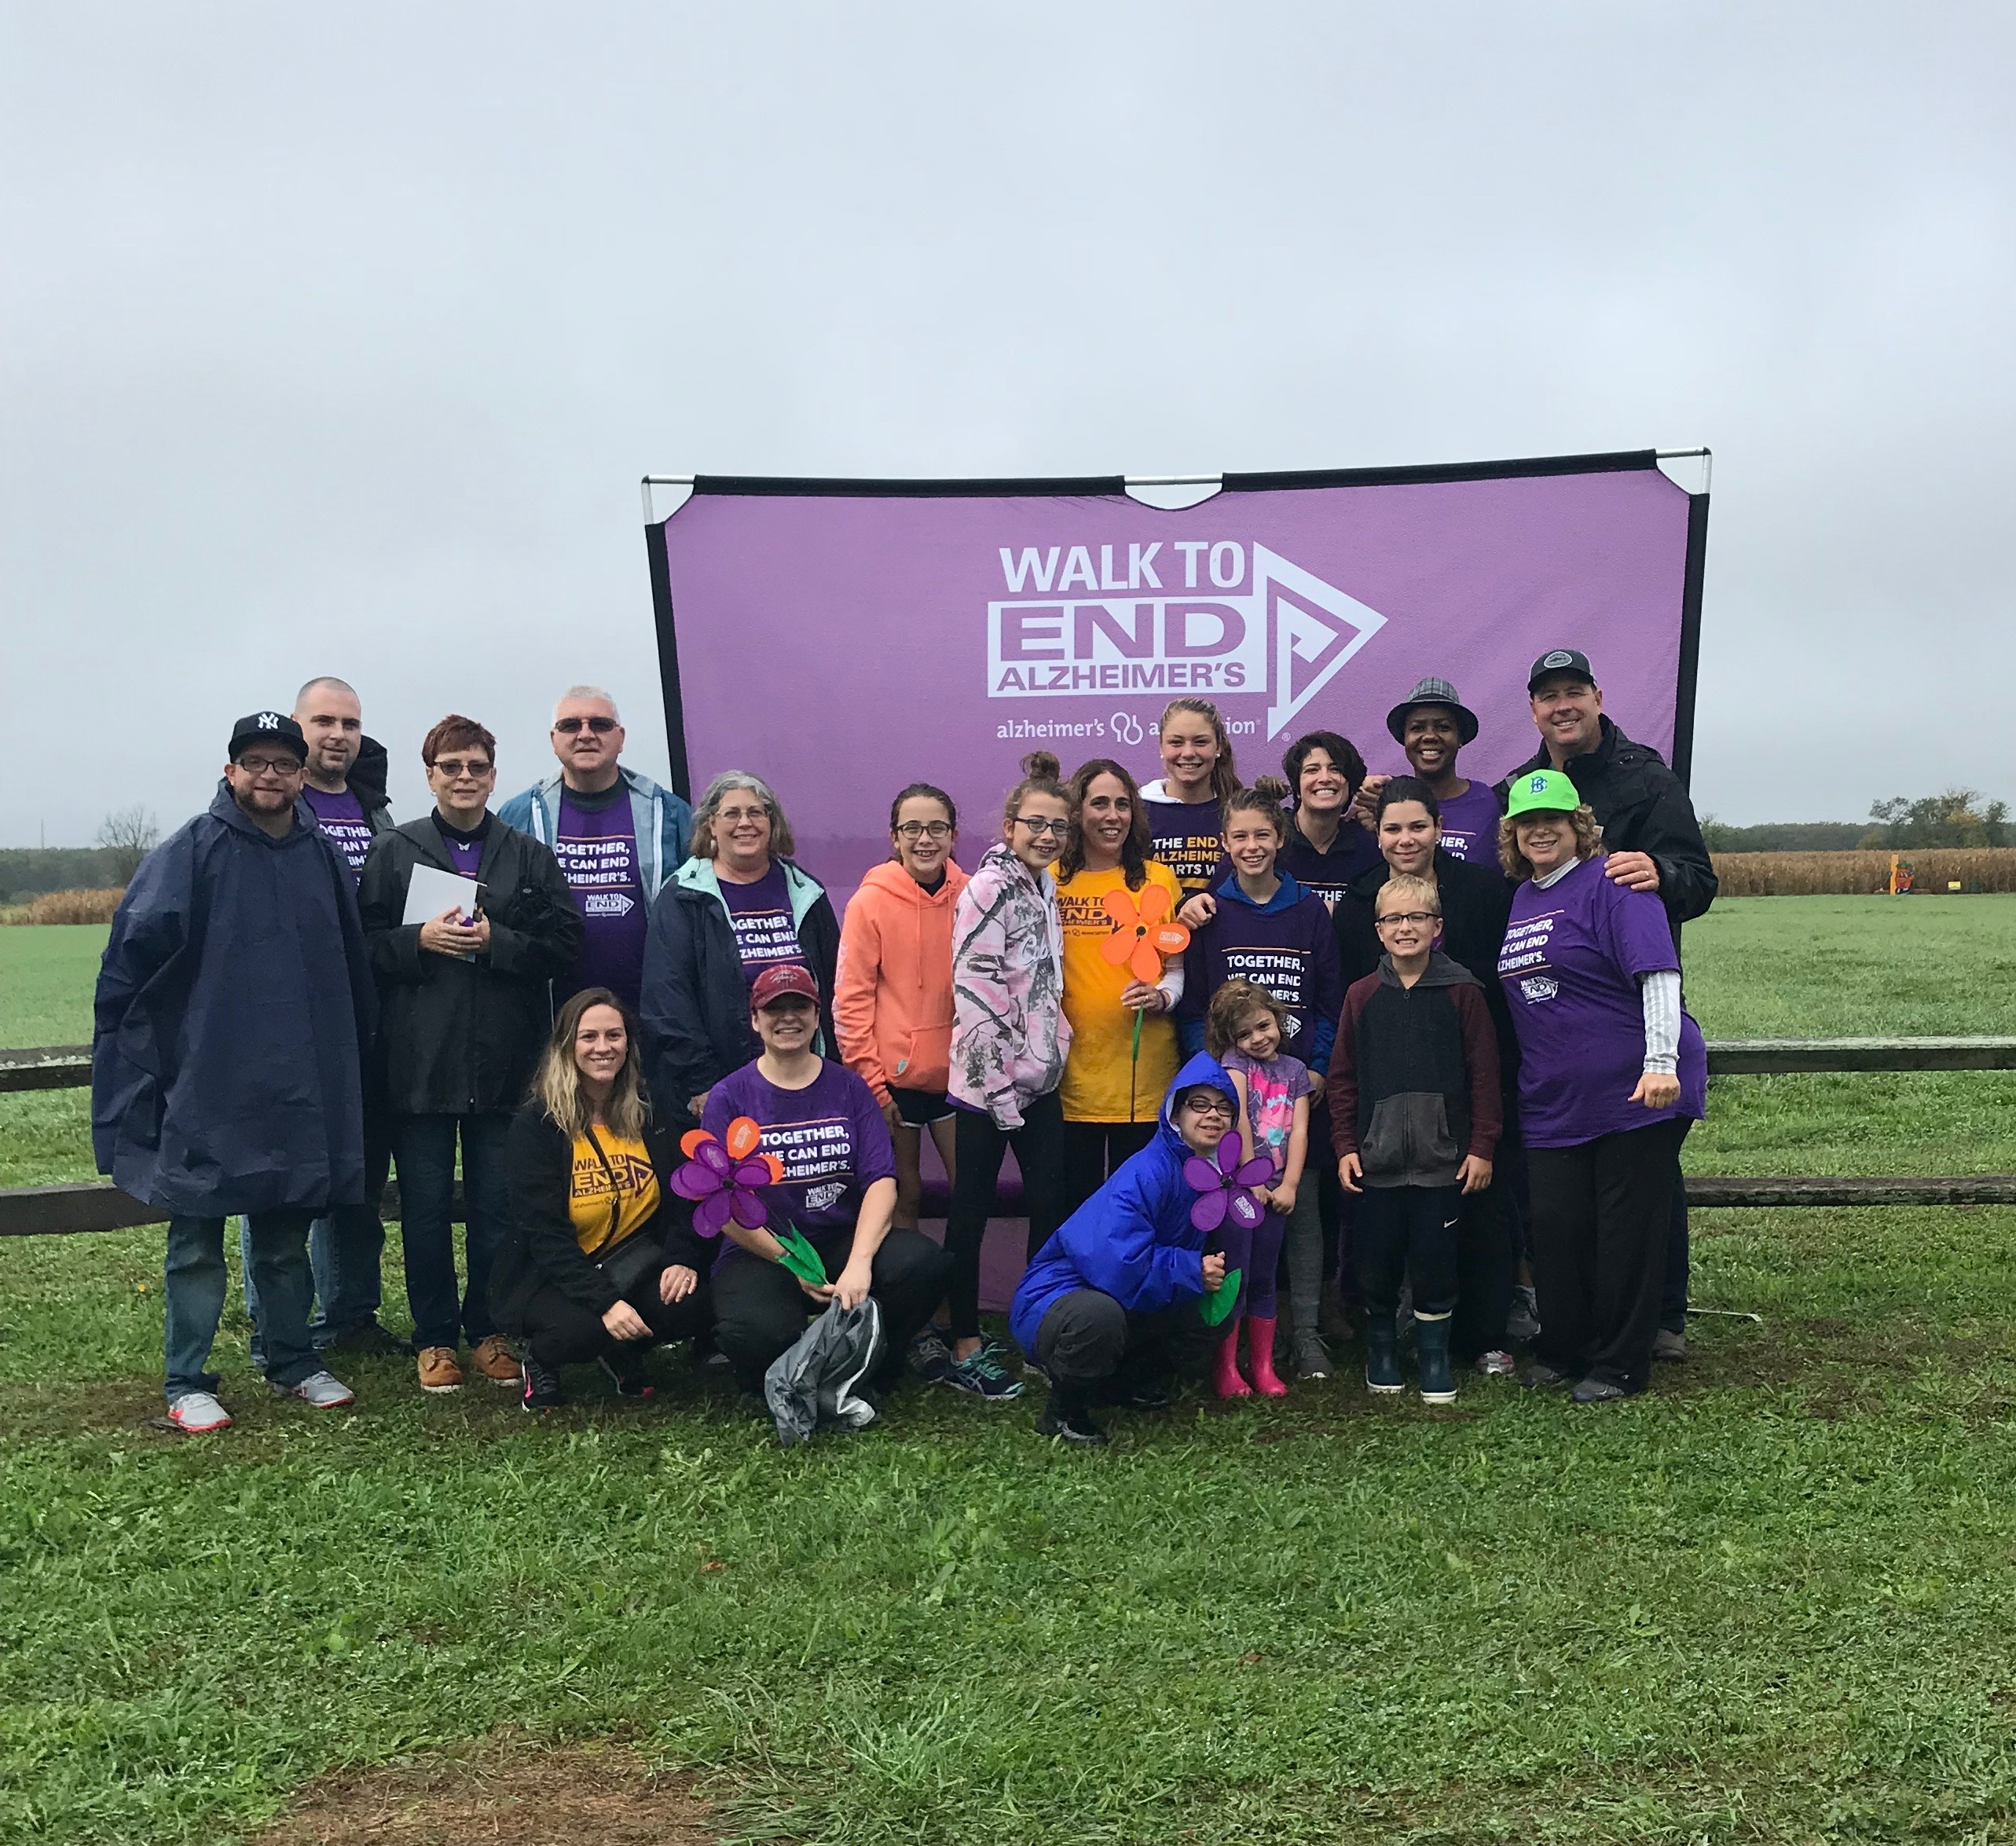 Twomey Latham team and friends walk to end alzheimers 2017